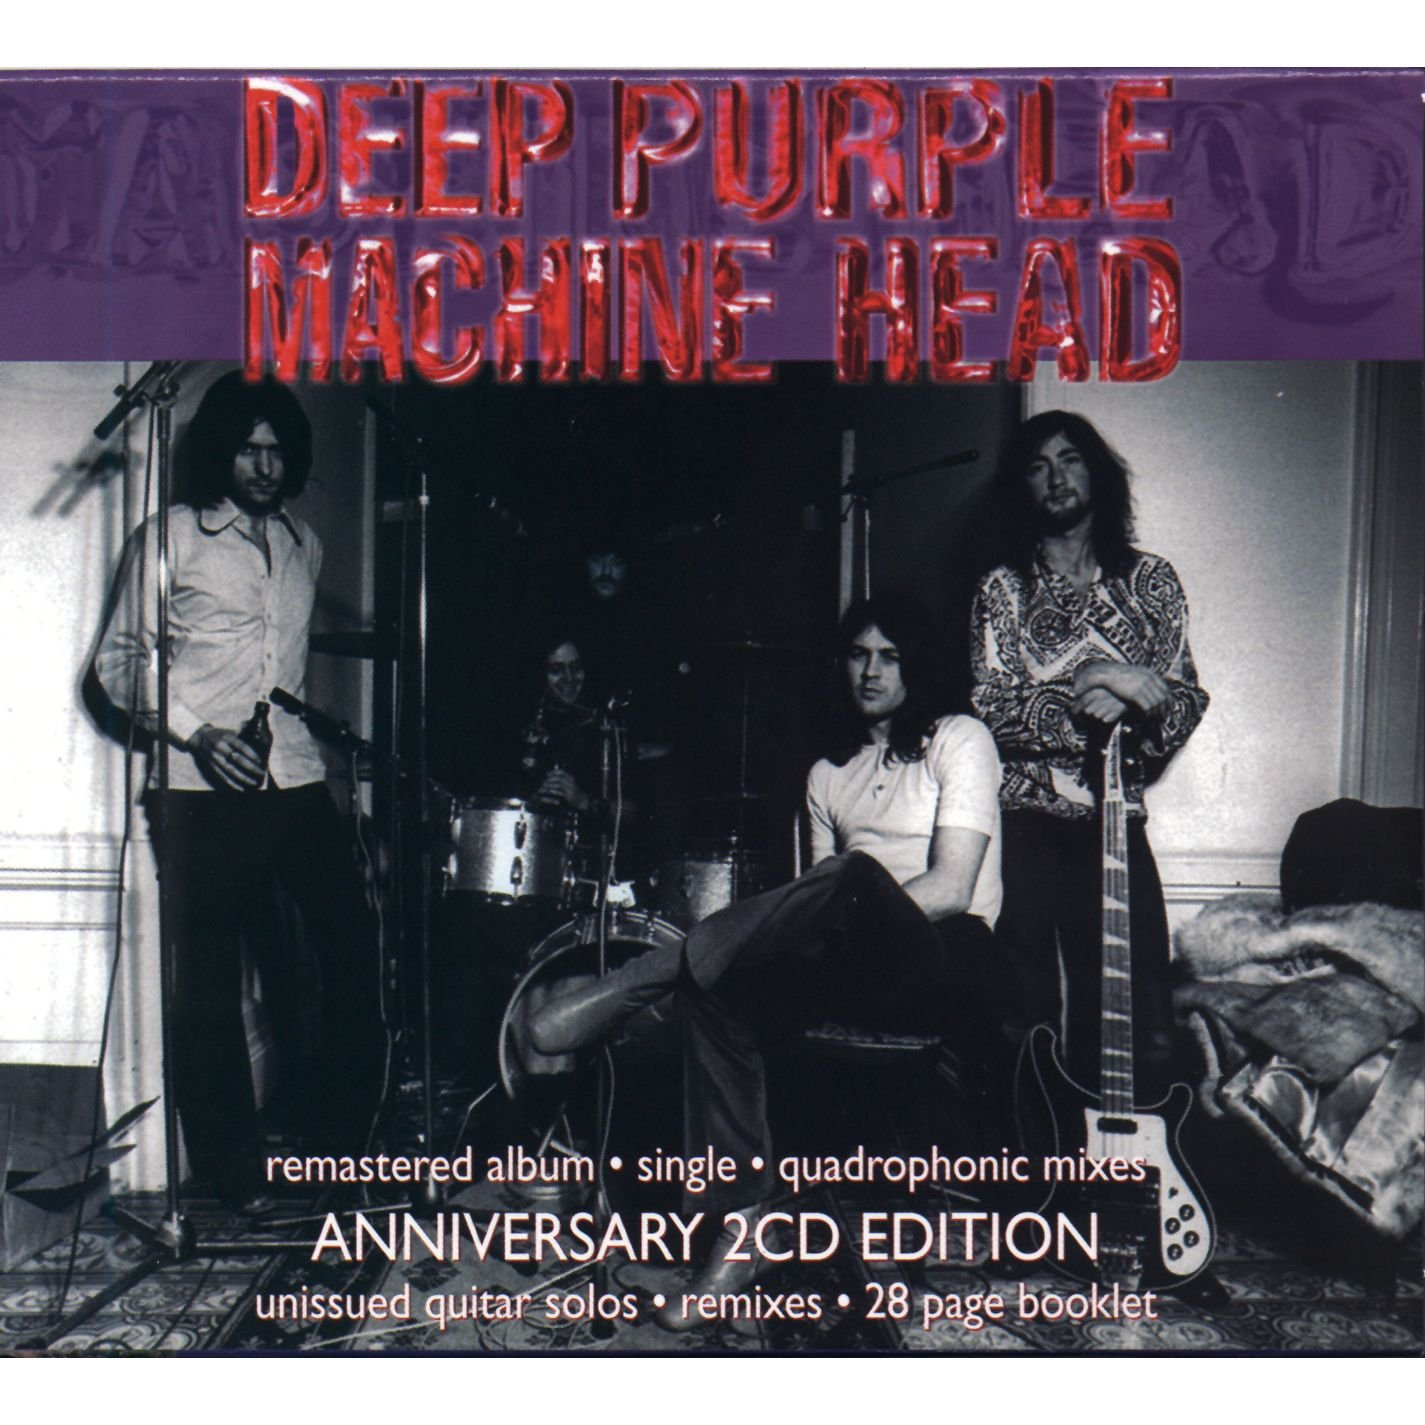 Deep purple pictures of home remastered music.